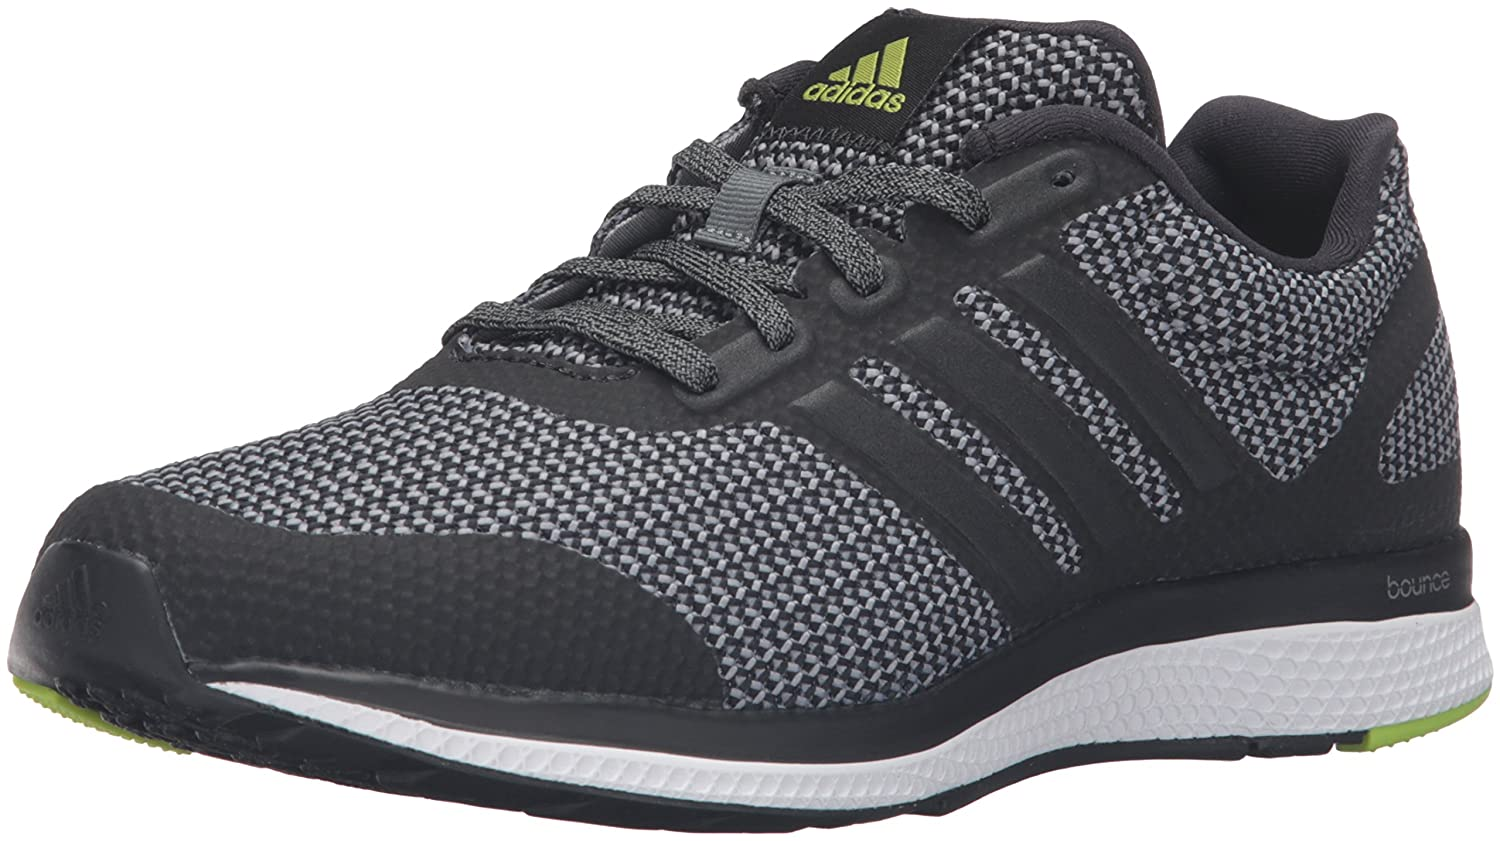 new product 8e186 bd3c8 Amazon.com   adidas Performance Men s Mana Bounce Running Shoe   Road  Running